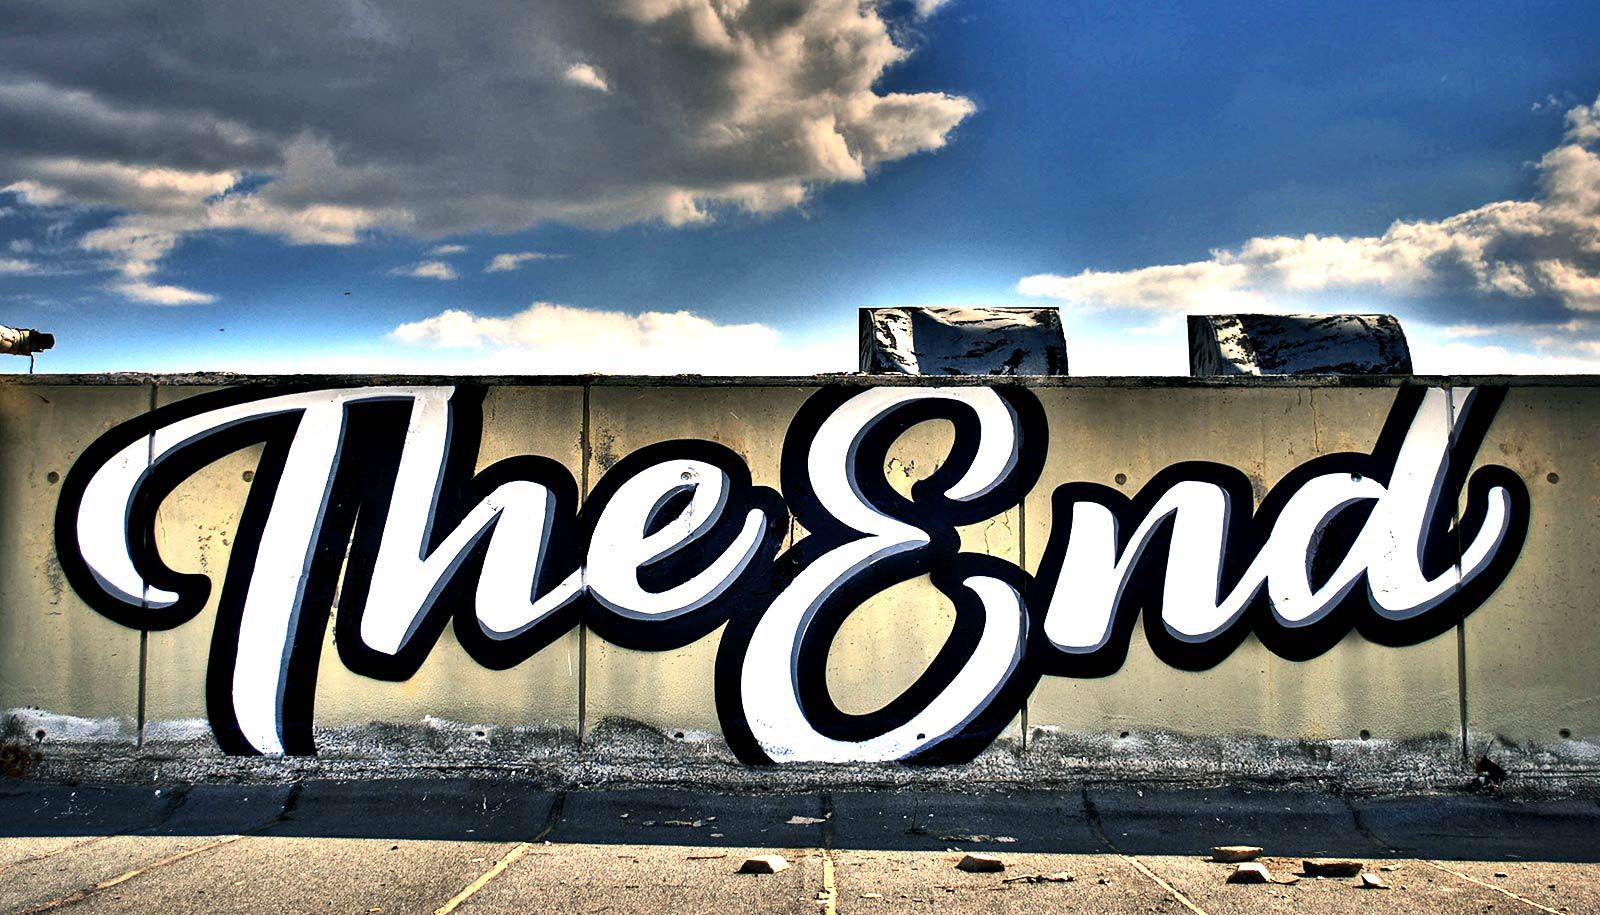 """The image shows a wall with """"The End"""" painted in large, cursive letters. (automated storytelling concept)"""